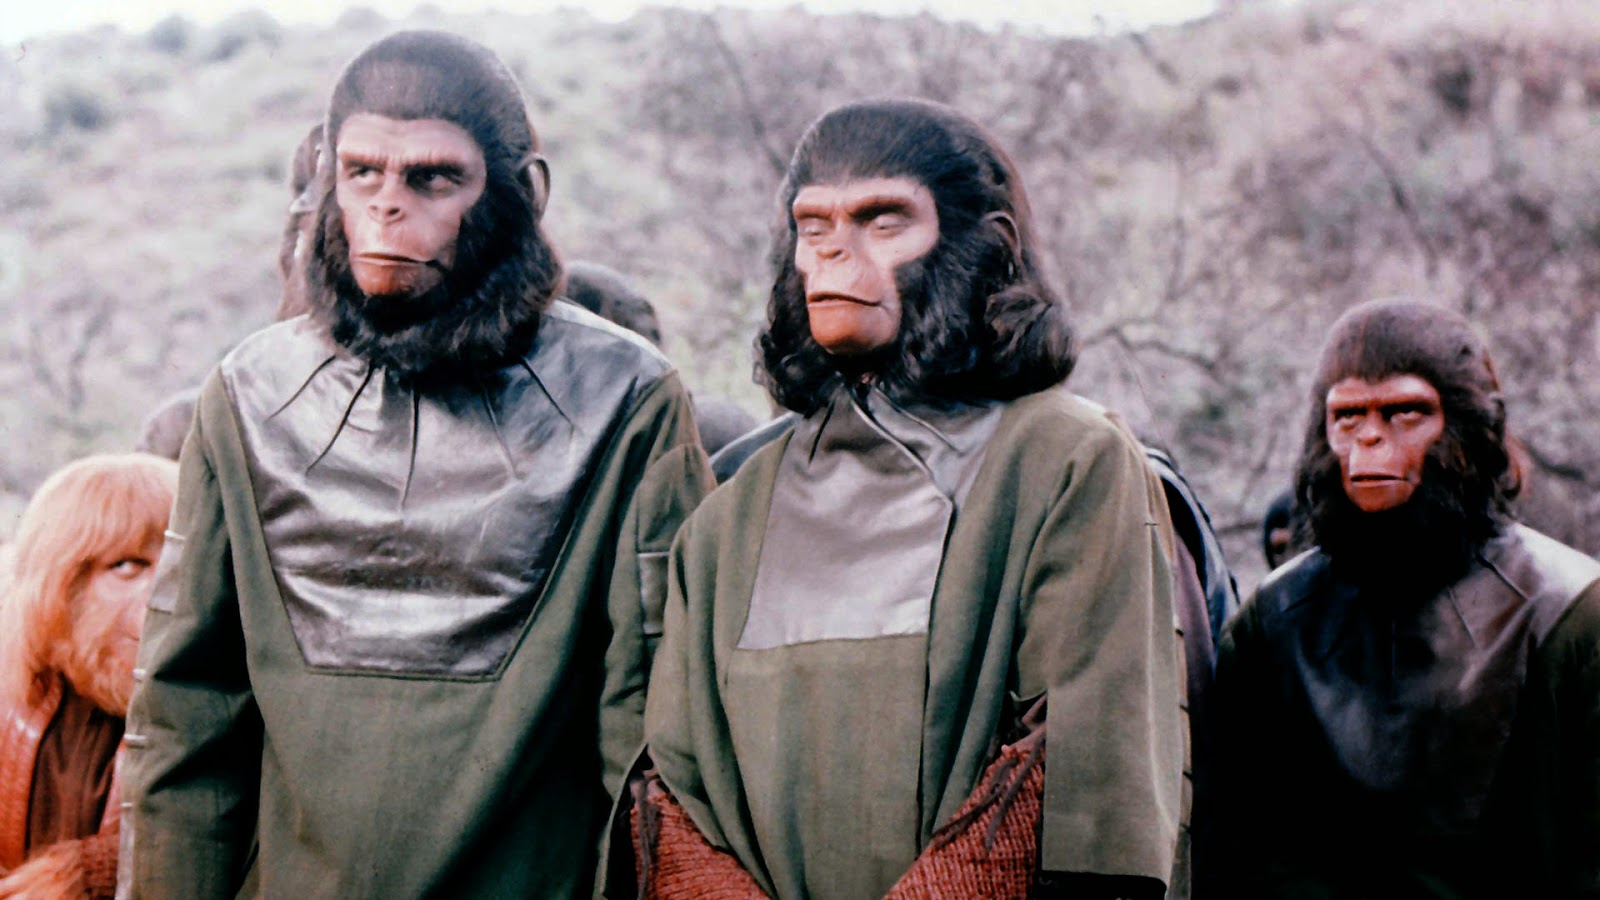 Apes Movies Series The Fifth Apes Movie is